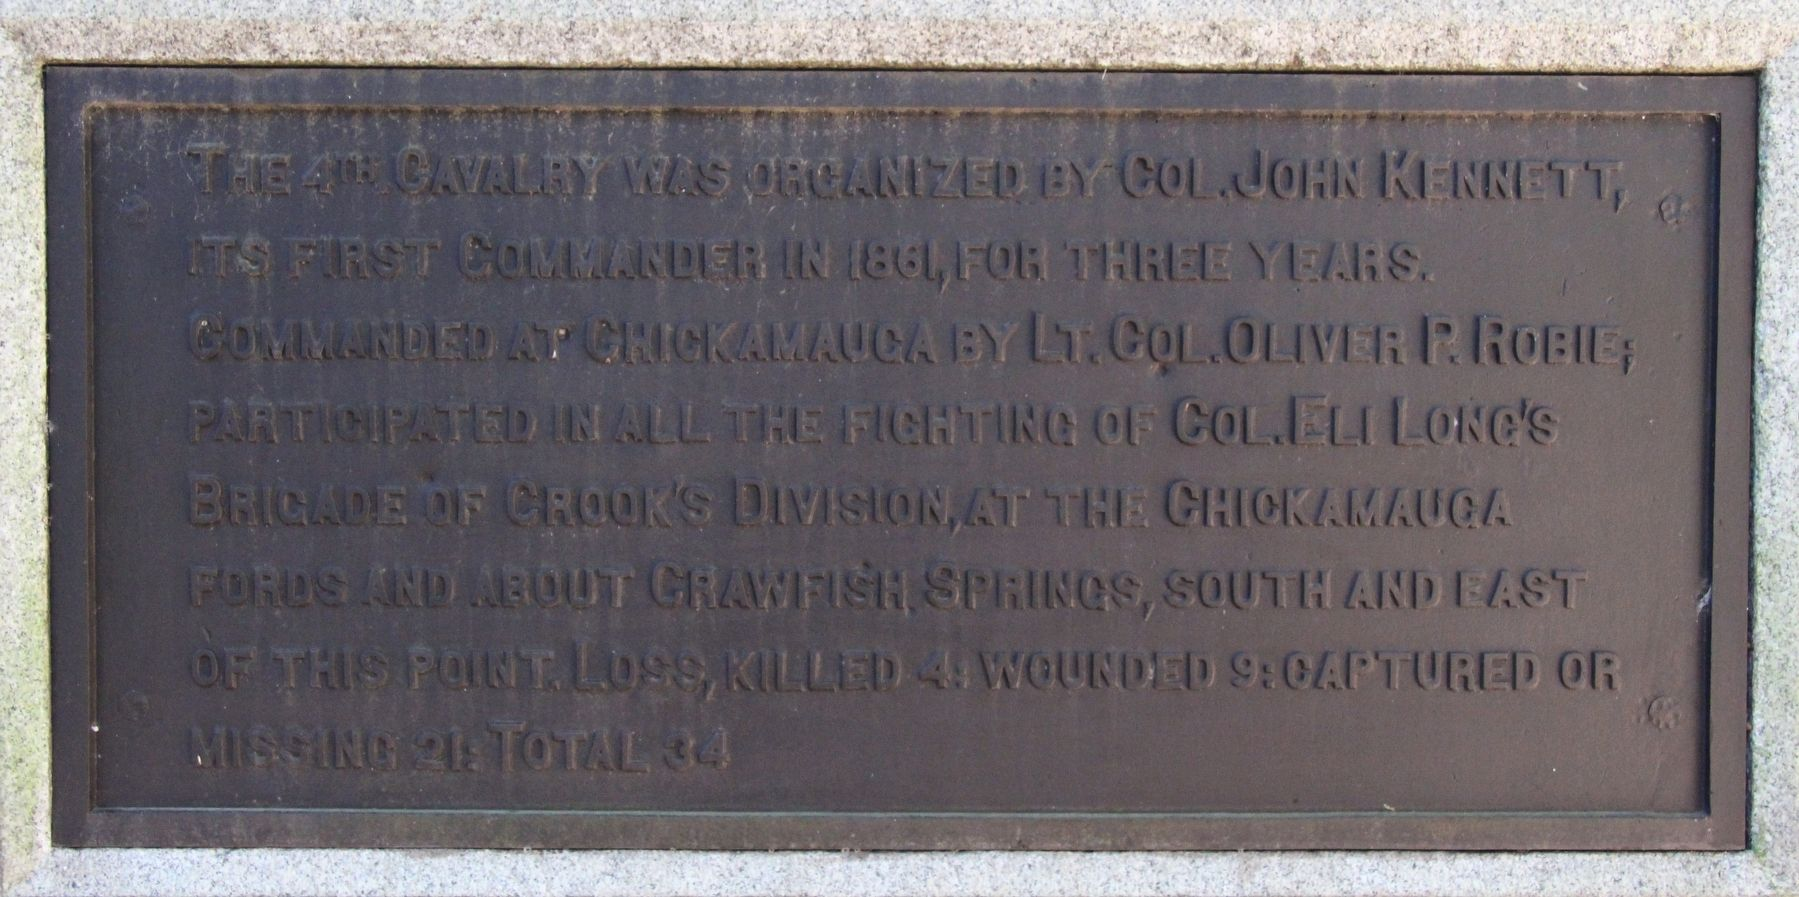 4th Ohio Cavalry Marker image. Click for full size.